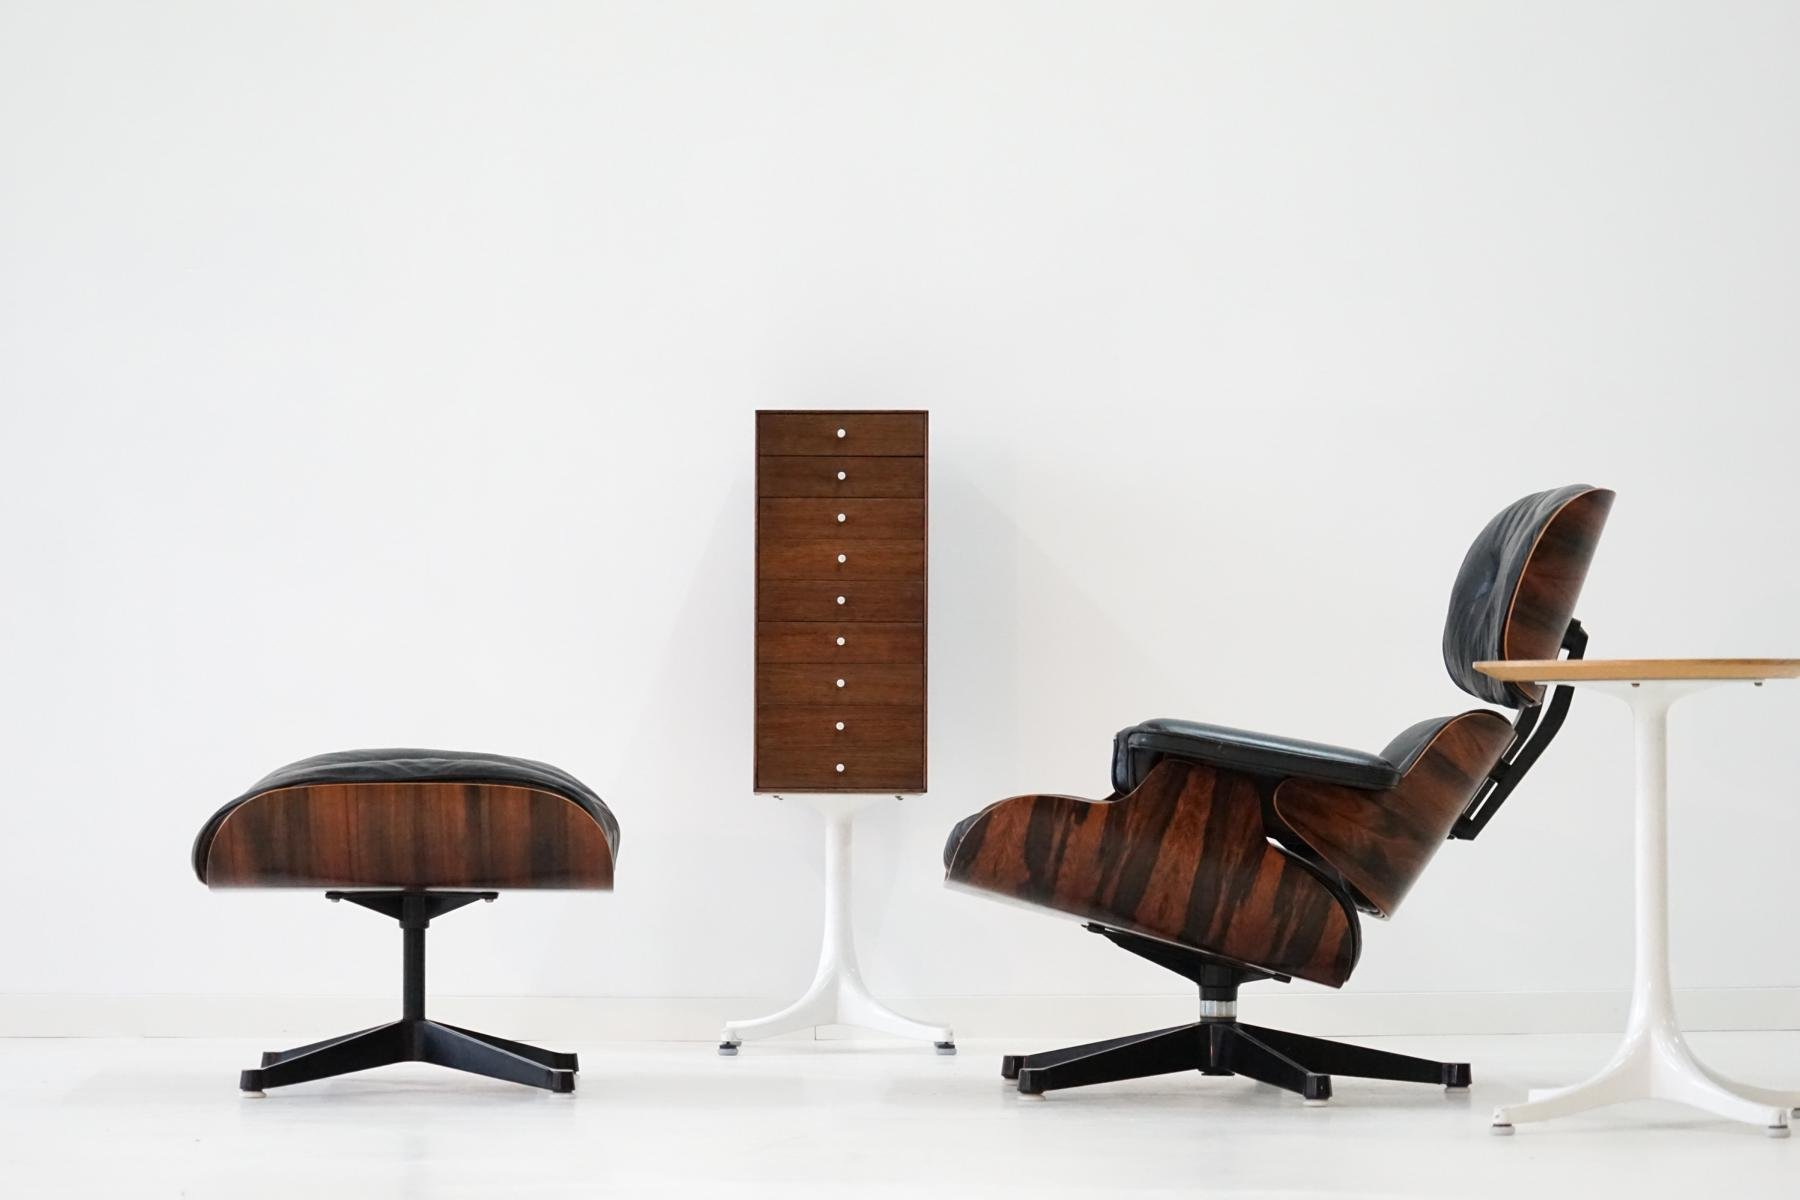 lounge chair ottoman by charles and ray eames for herman miller 1960s for sale at pamono. Black Bedroom Furniture Sets. Home Design Ideas